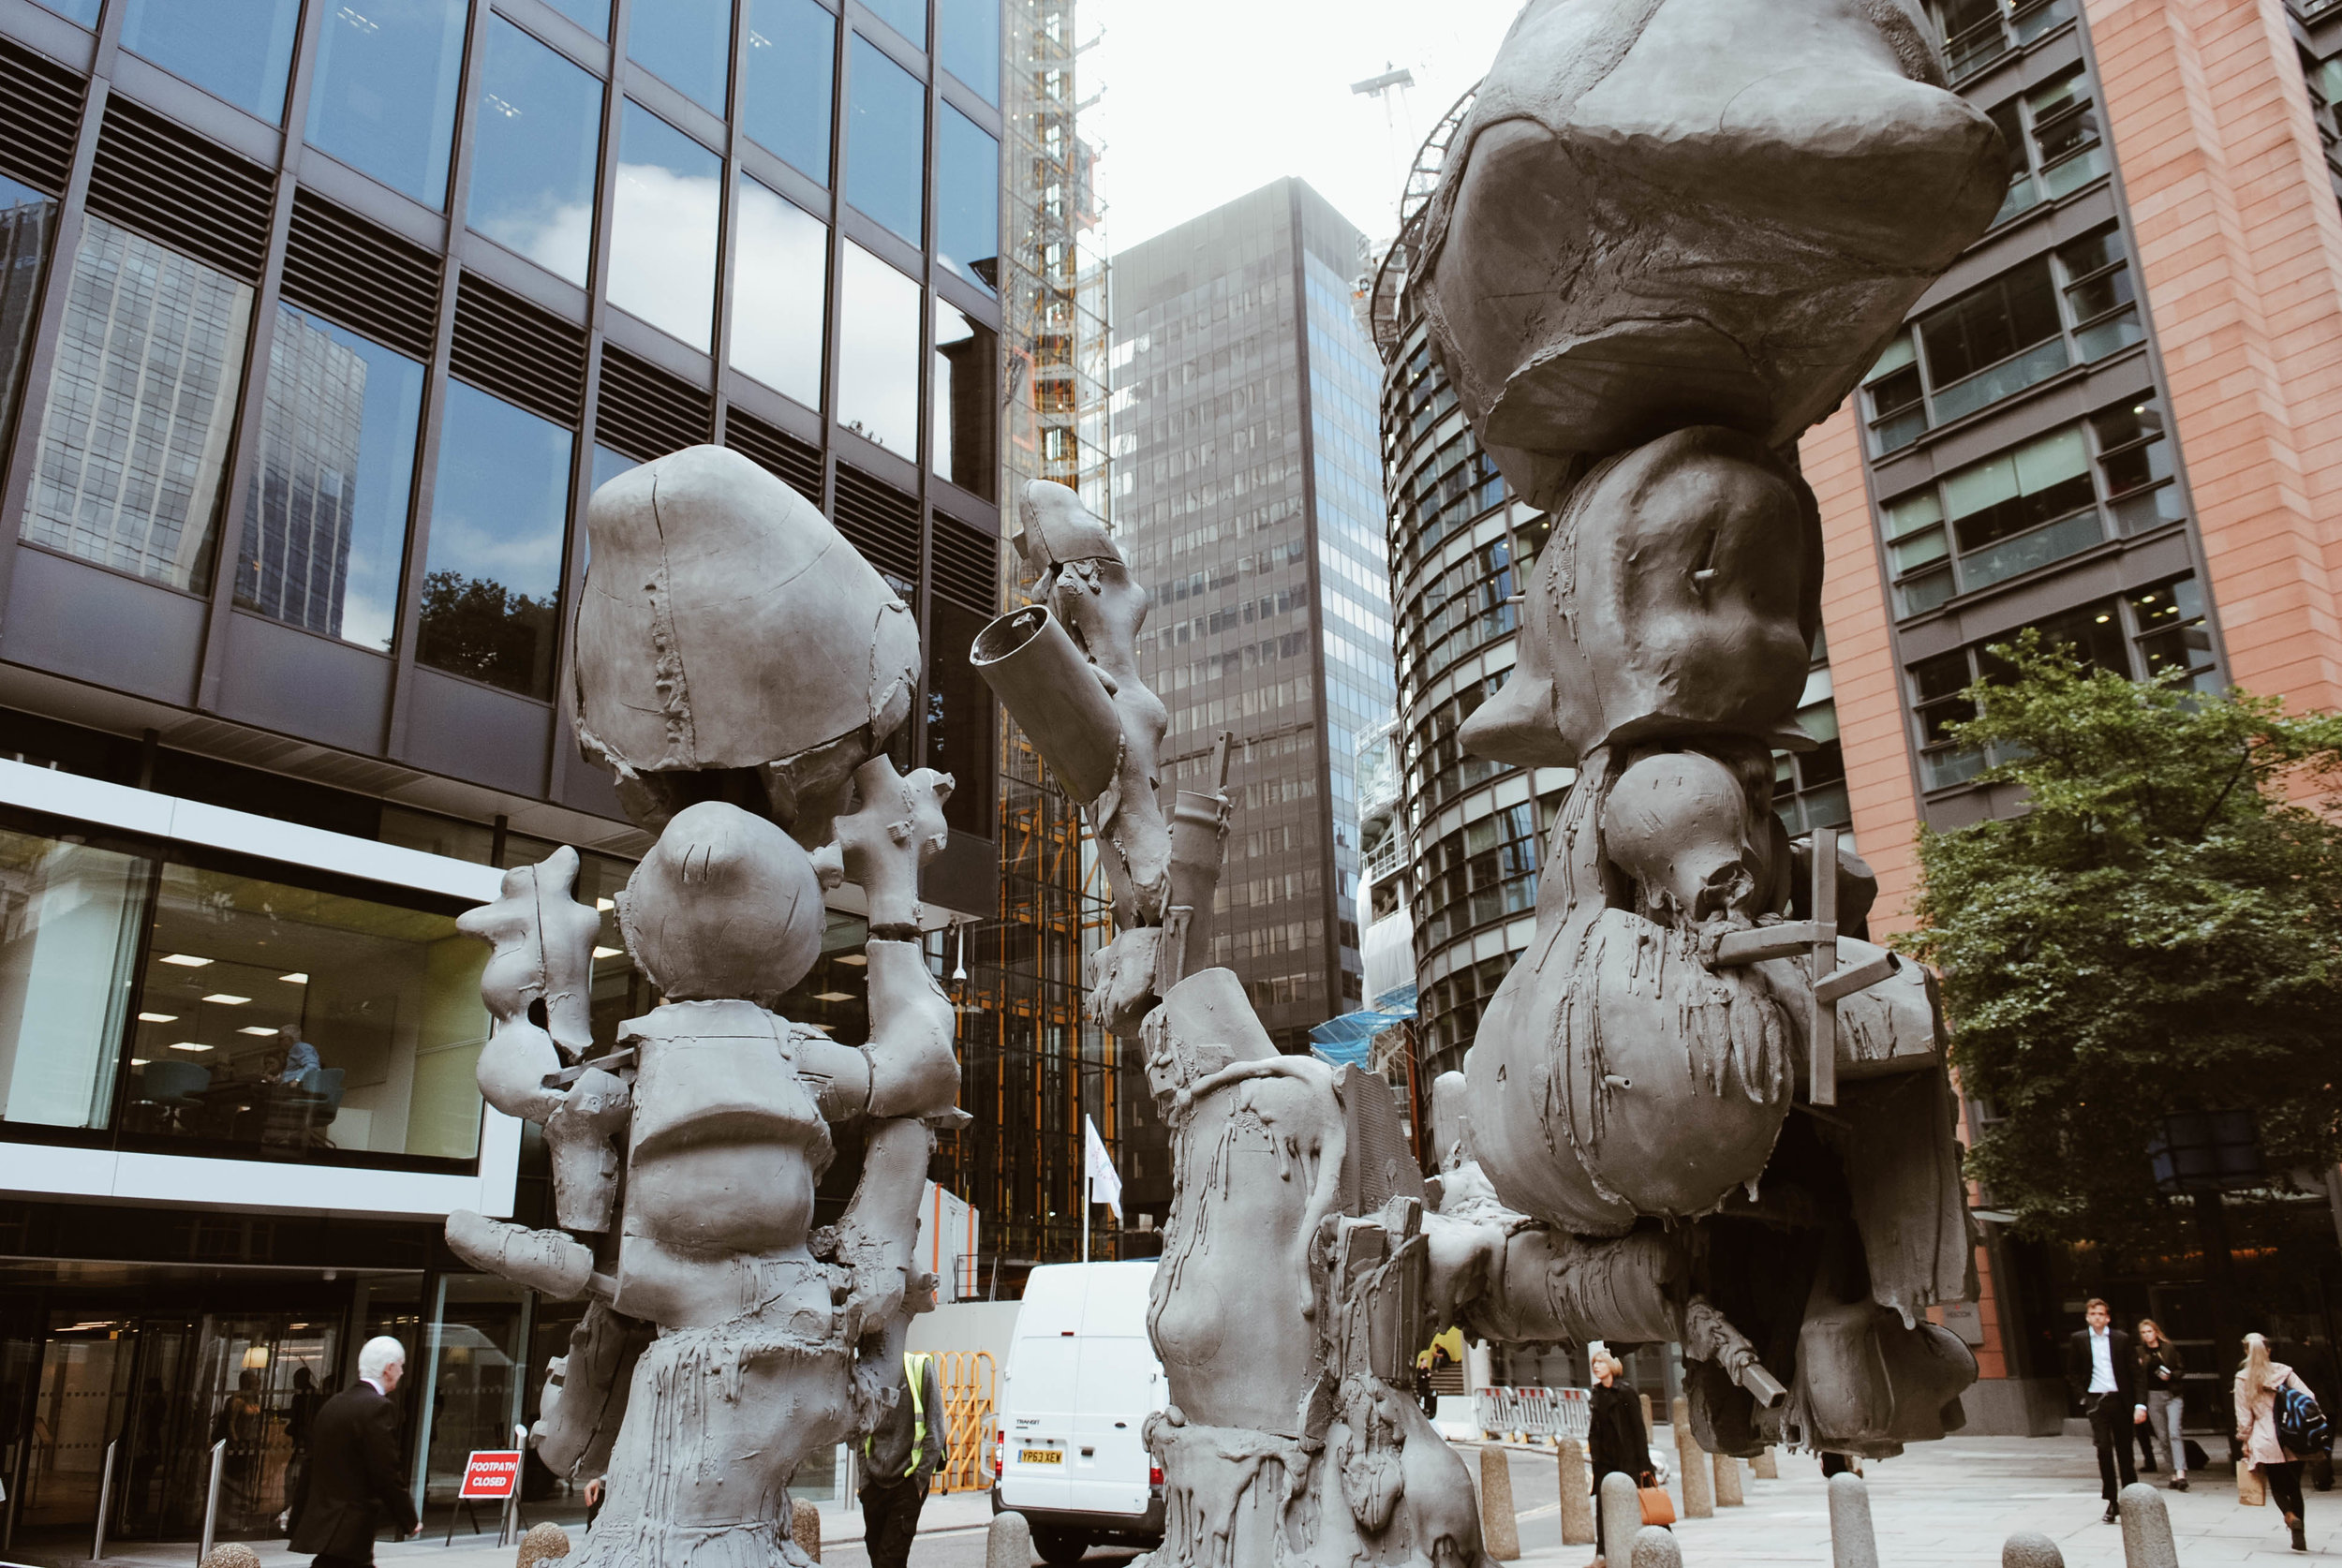 sculpture in the city 2017 (10 of 17).jpg